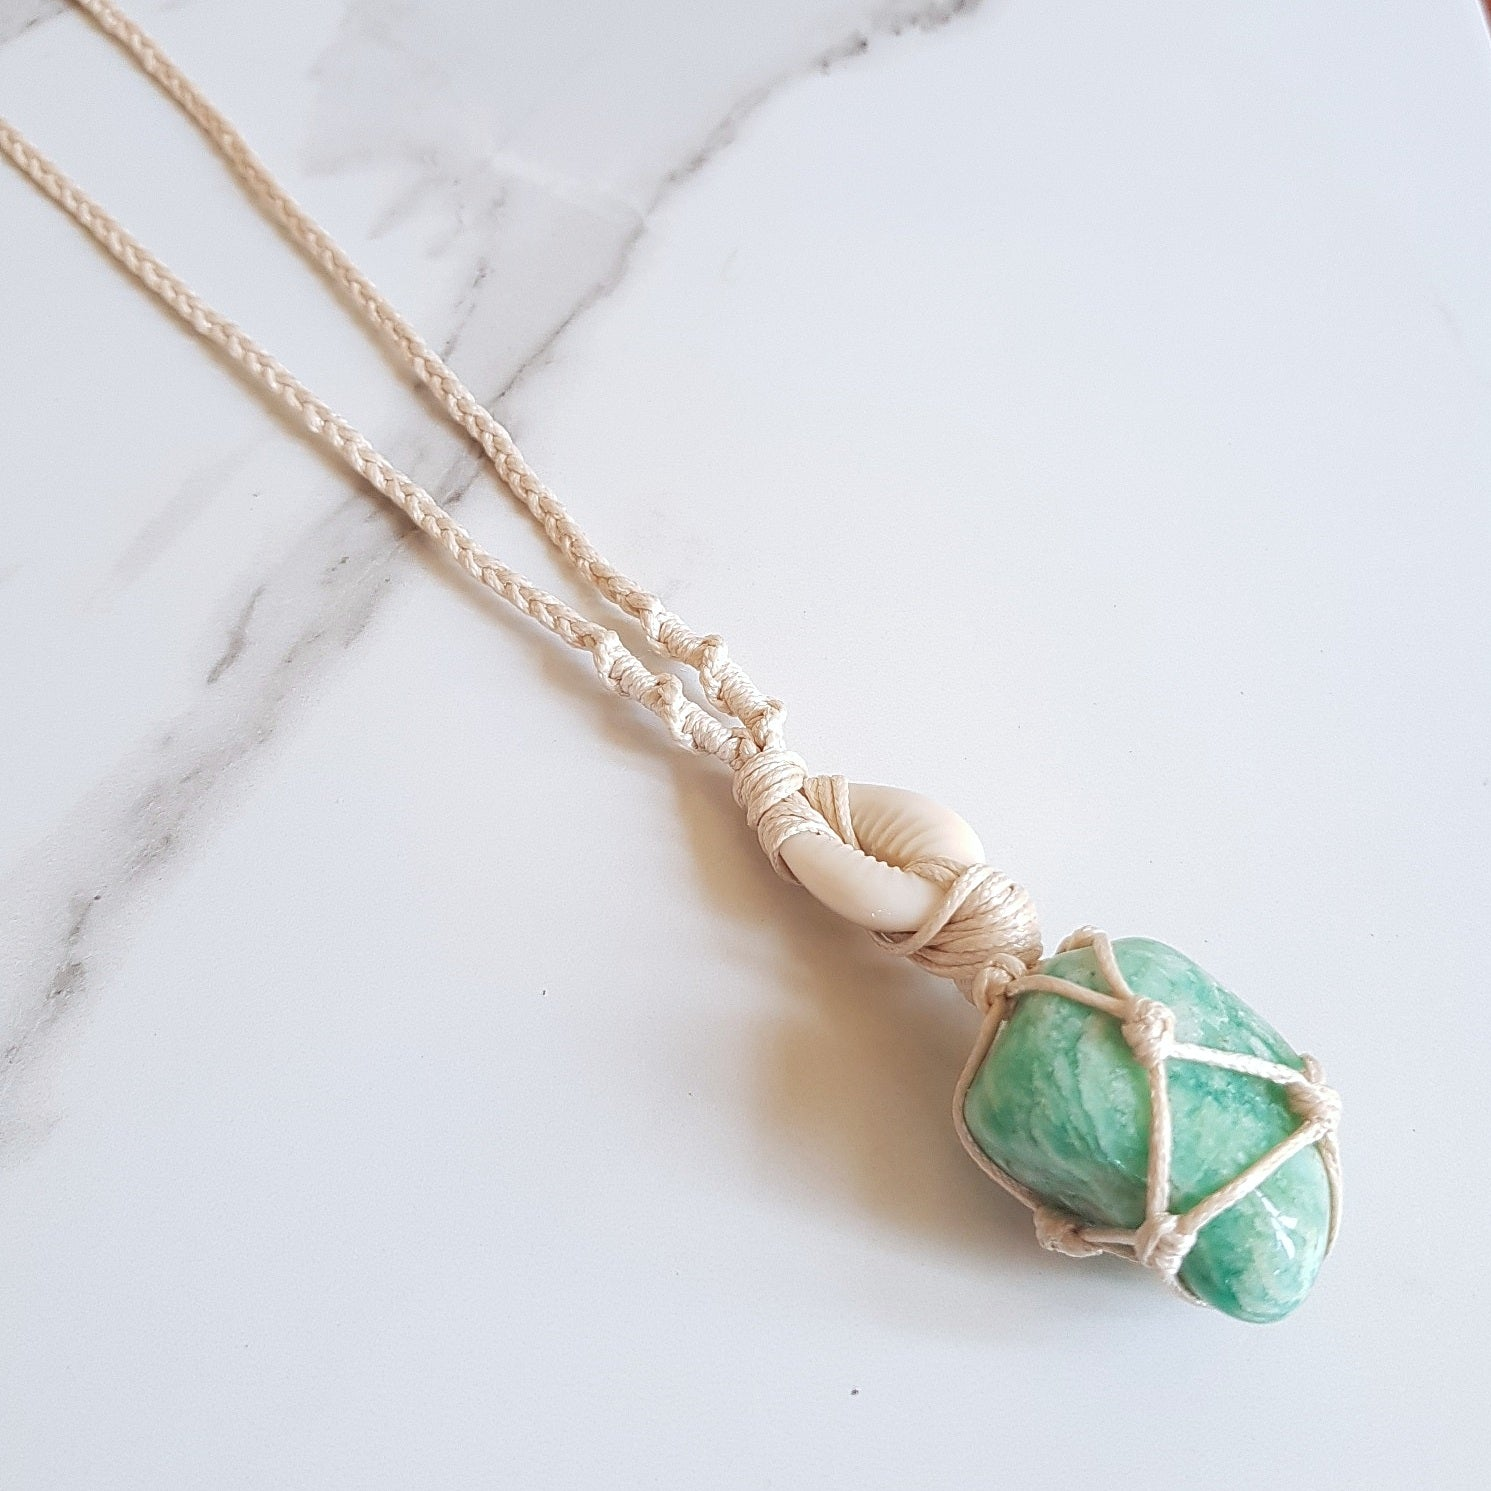 Goddess Necklace - Amazonite